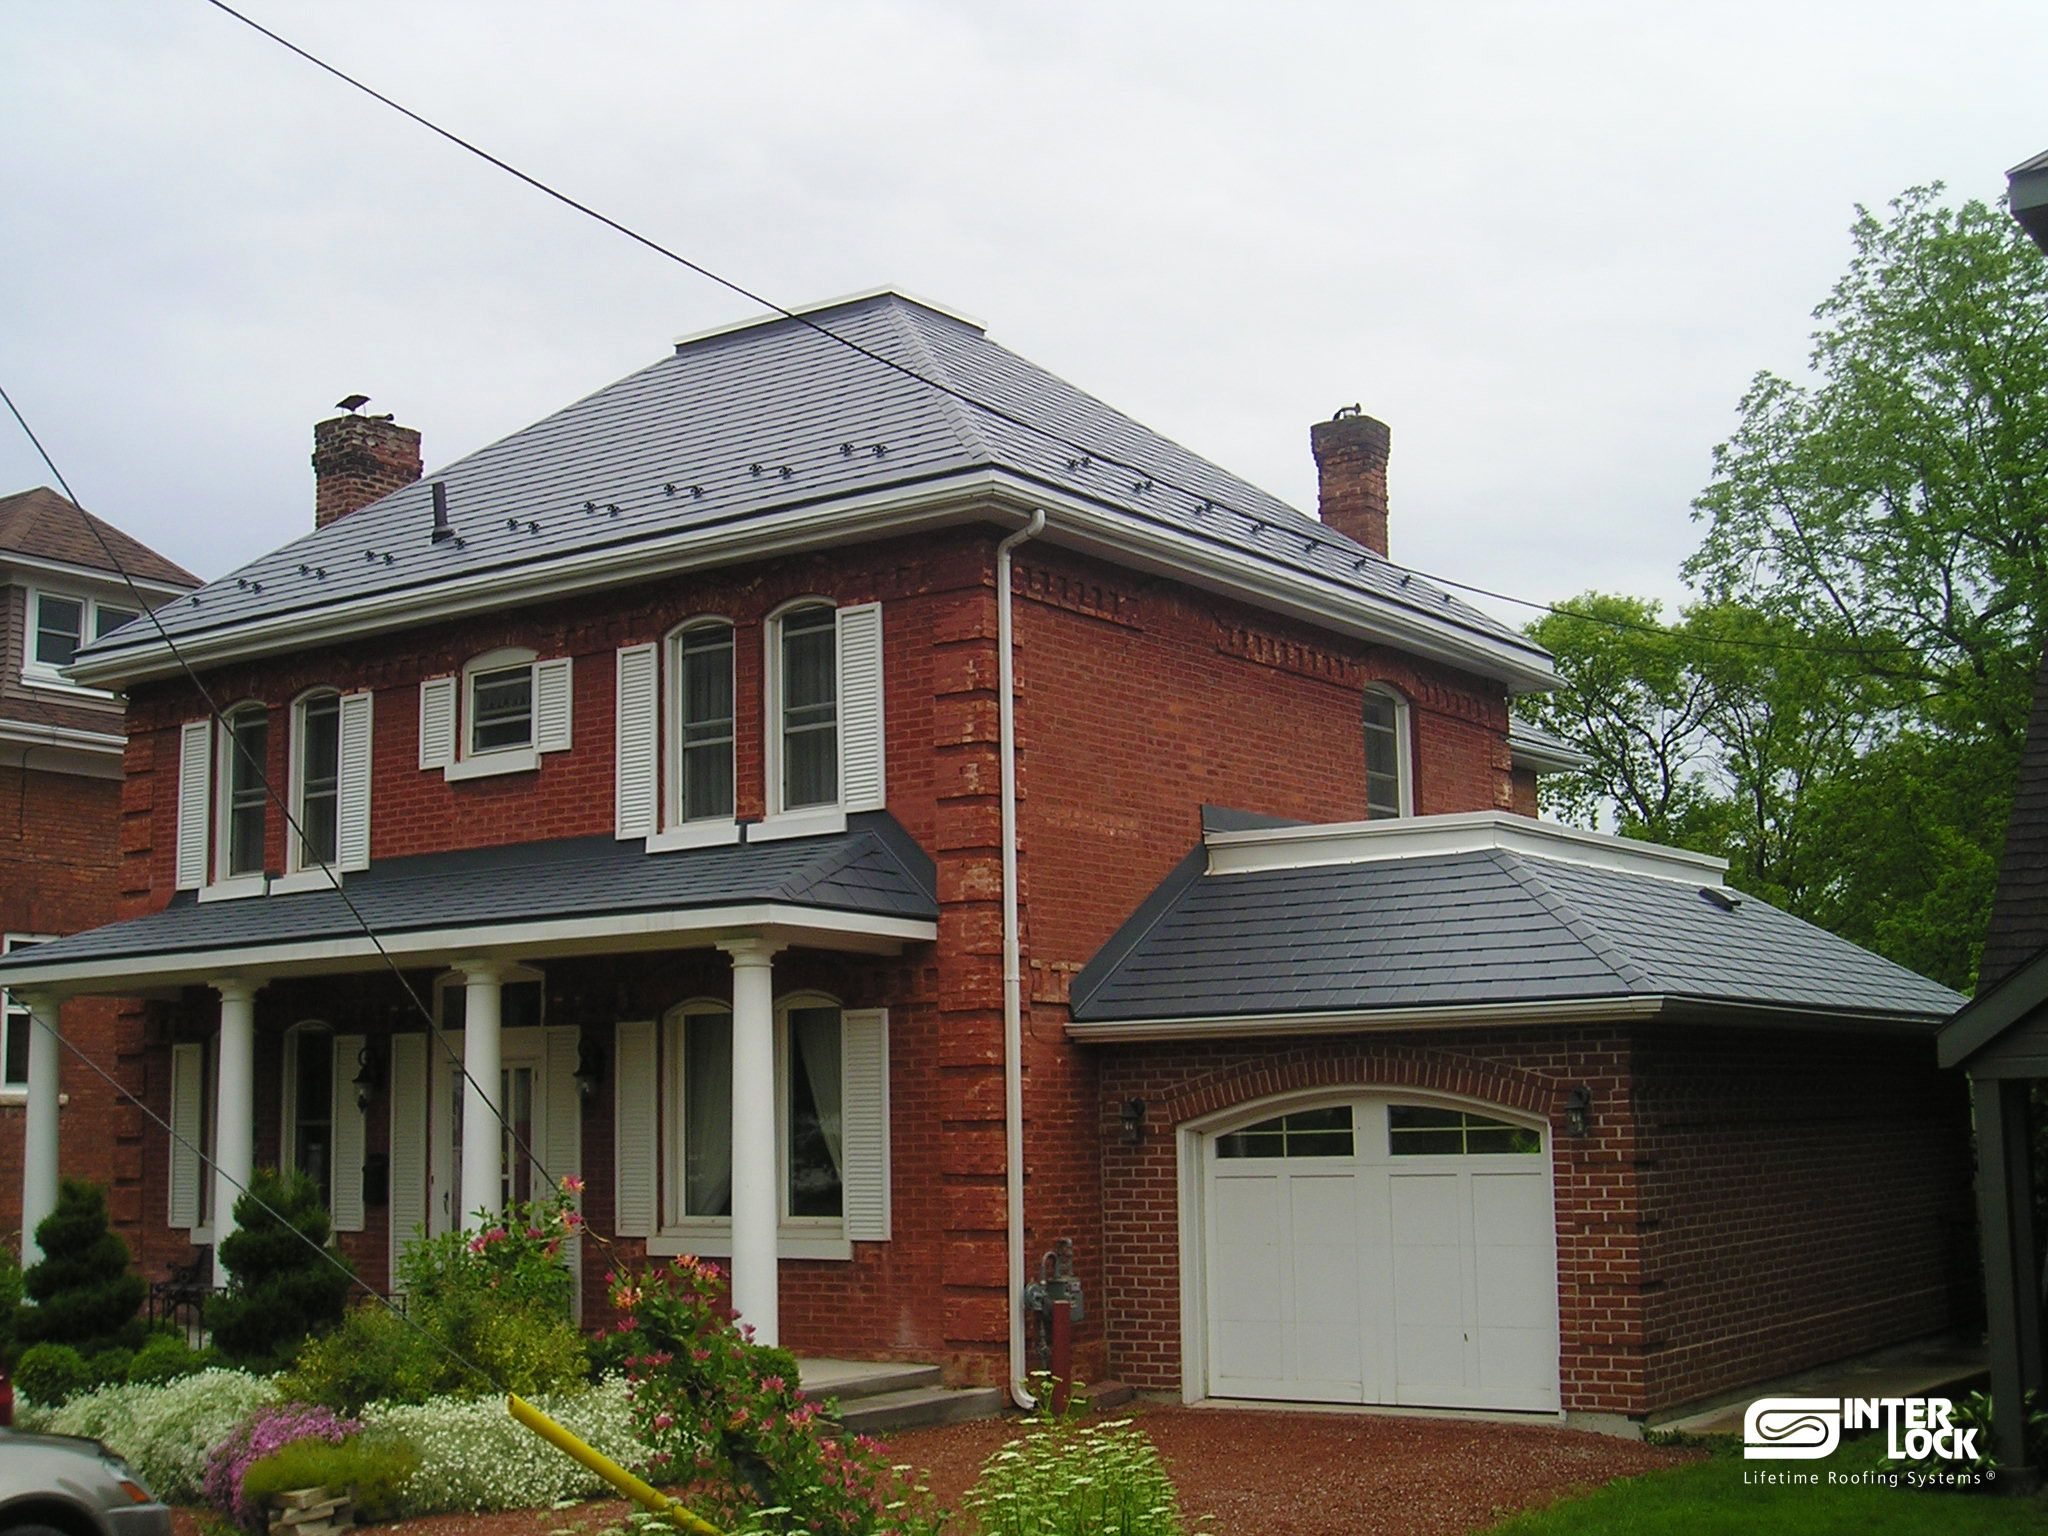 Brick house in nova scotia with a metal roof by interlock for Metal roof pictures brick house